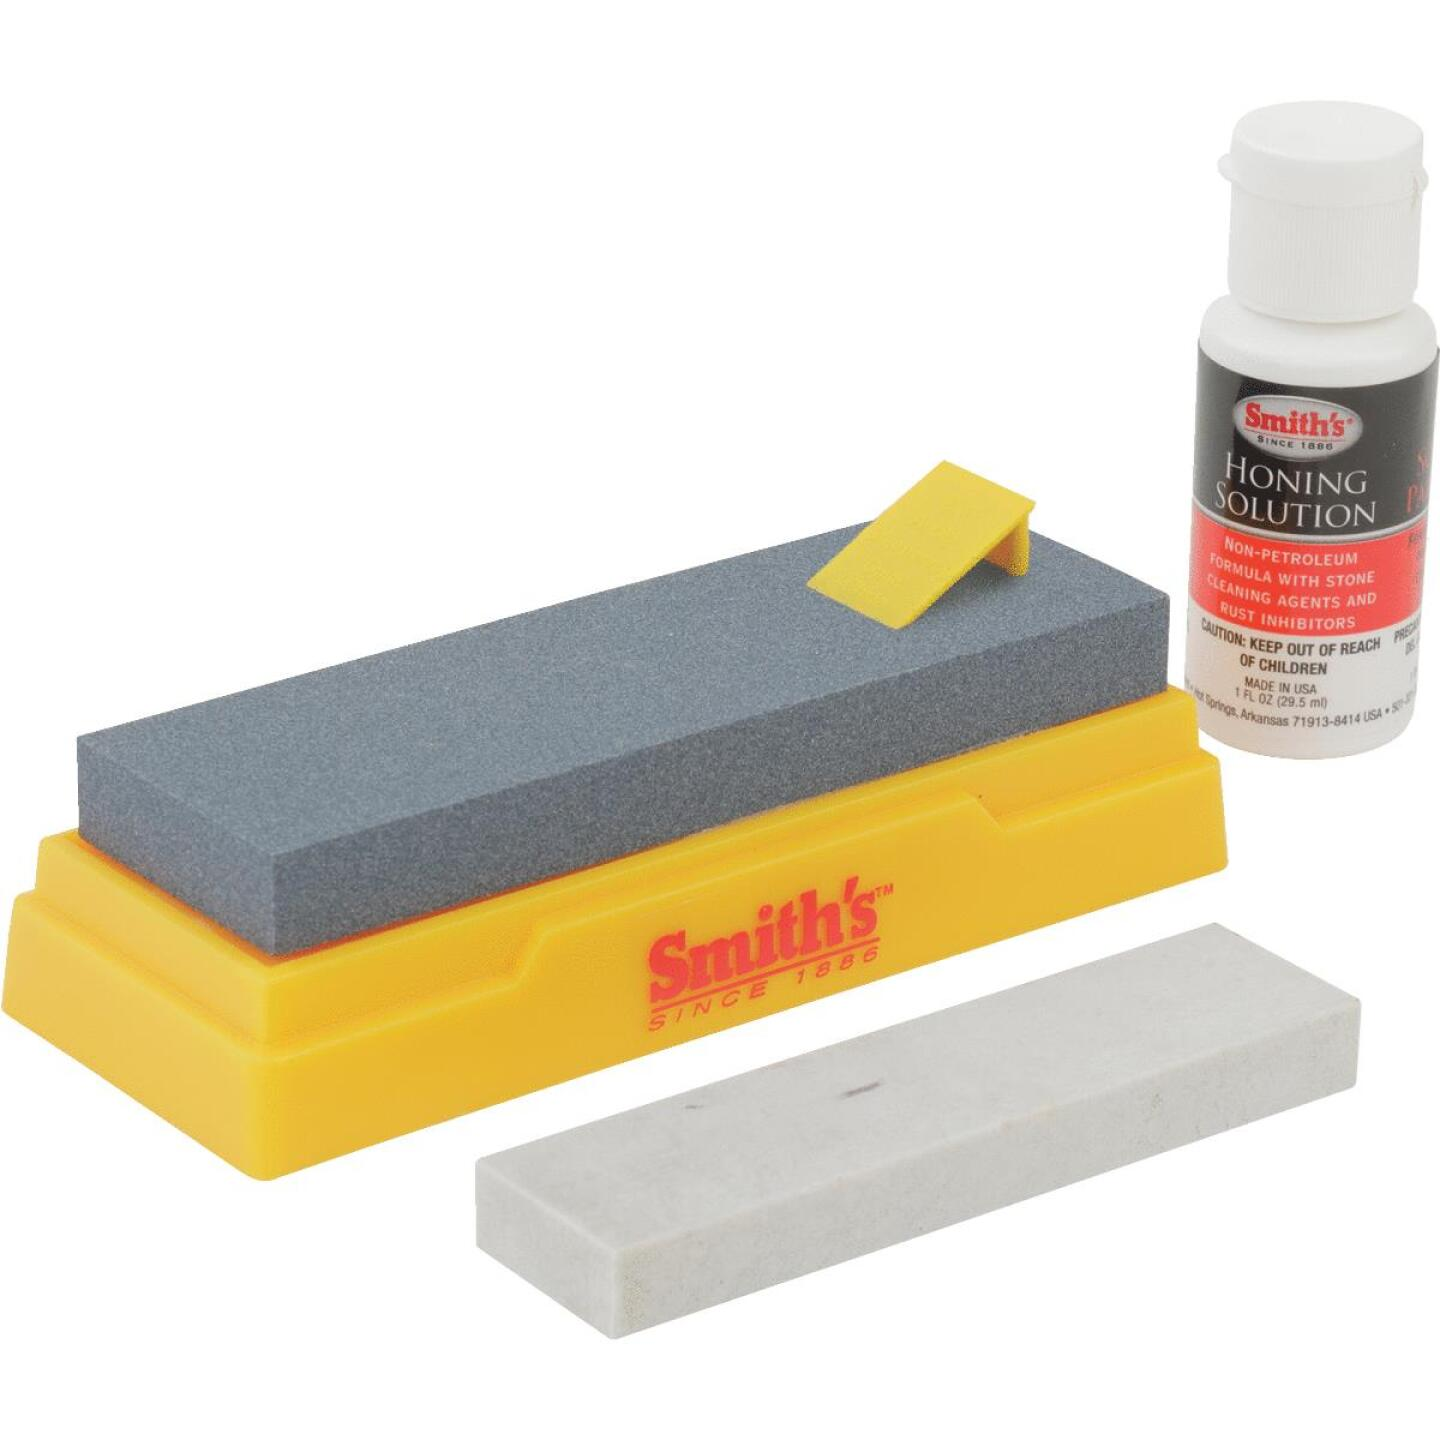 Smith's Deluxe Sharpening Kit Image 1